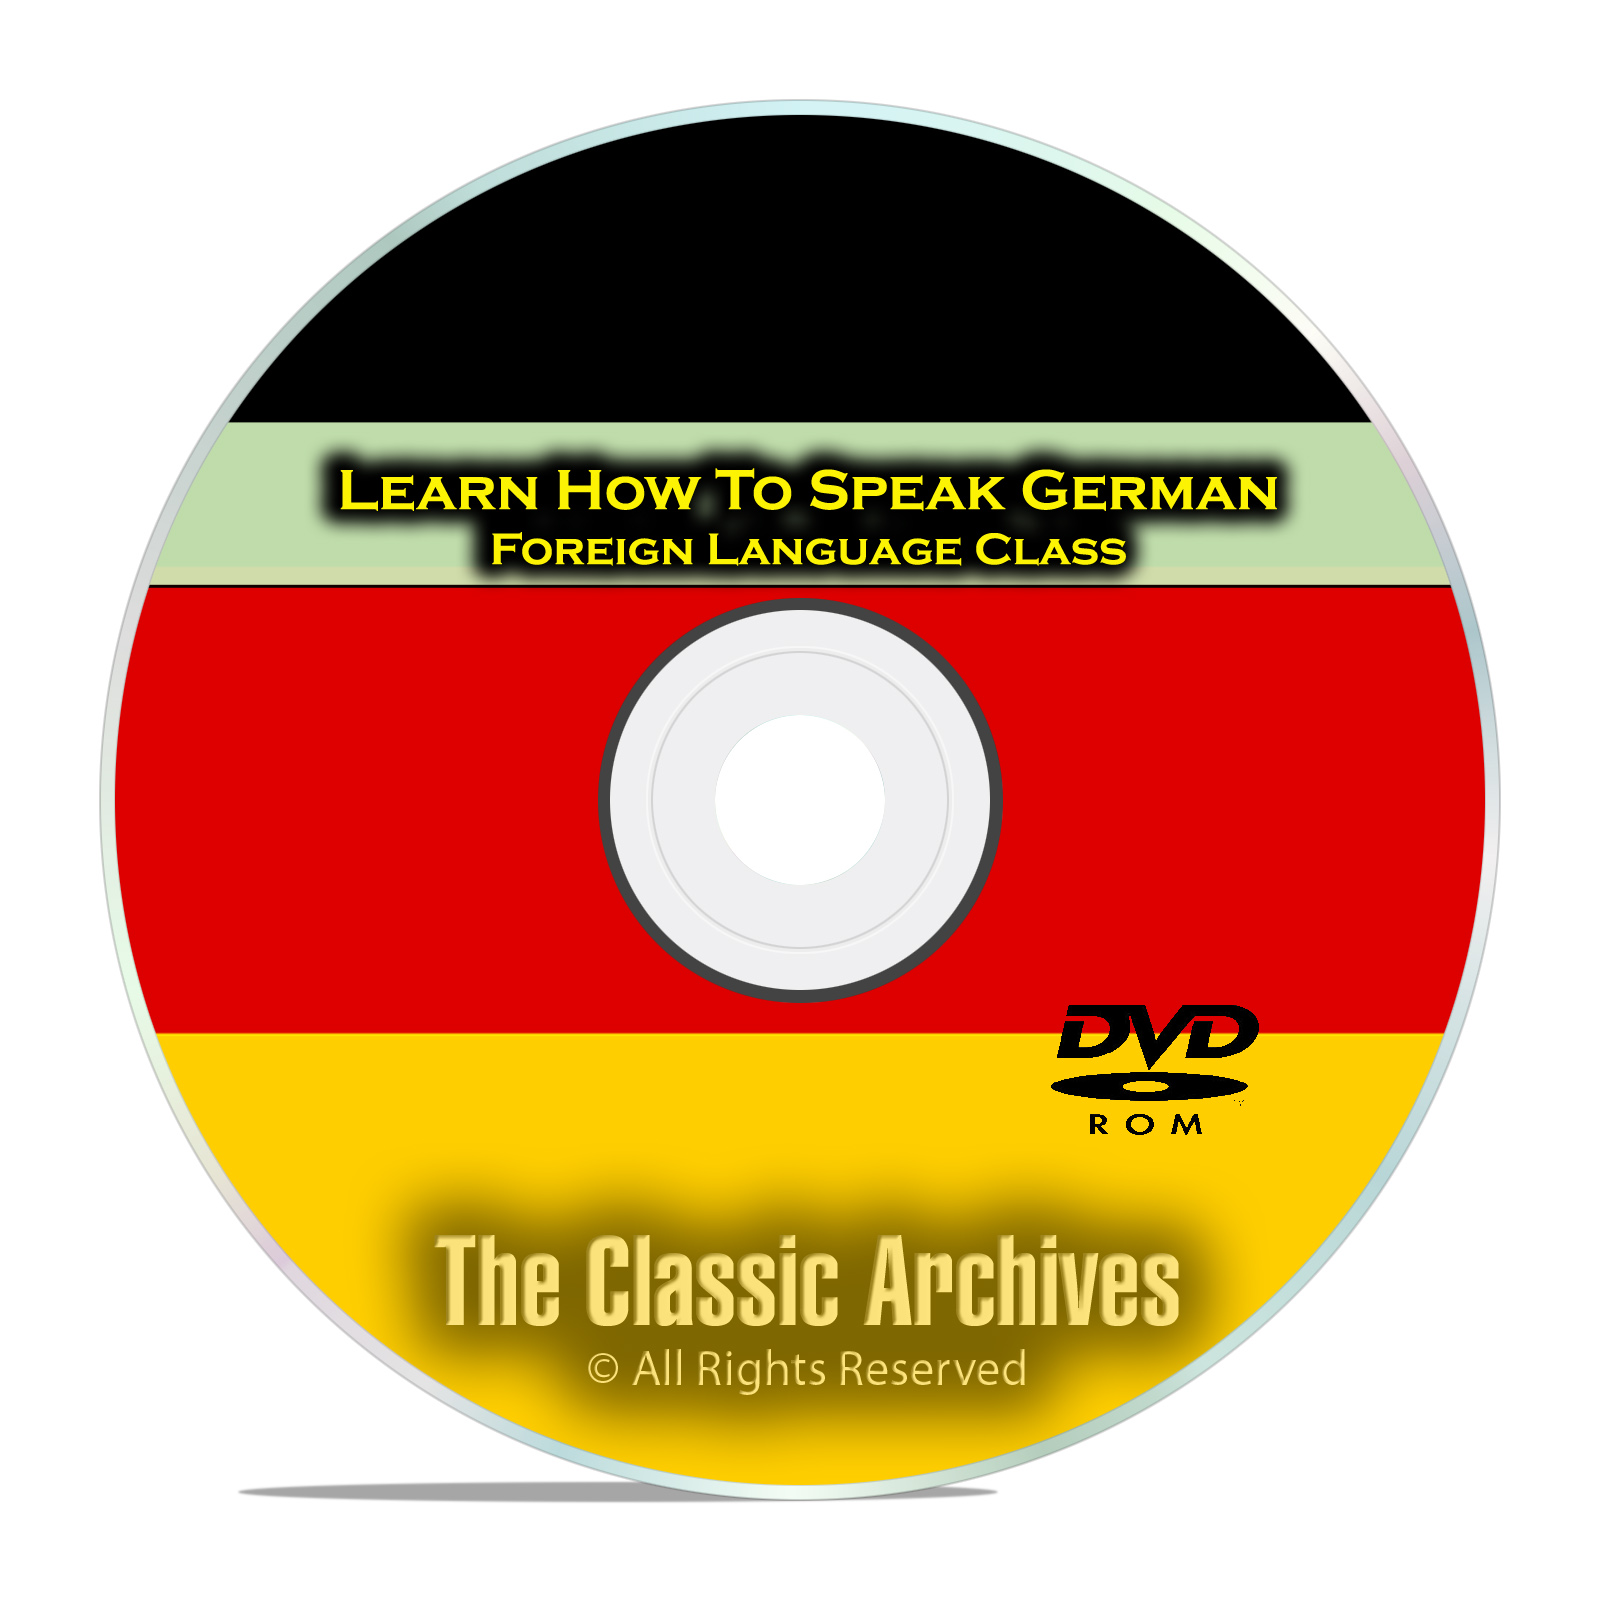 Learn How To Speak German, Fast Easy Foreign Language Training Course, DVD